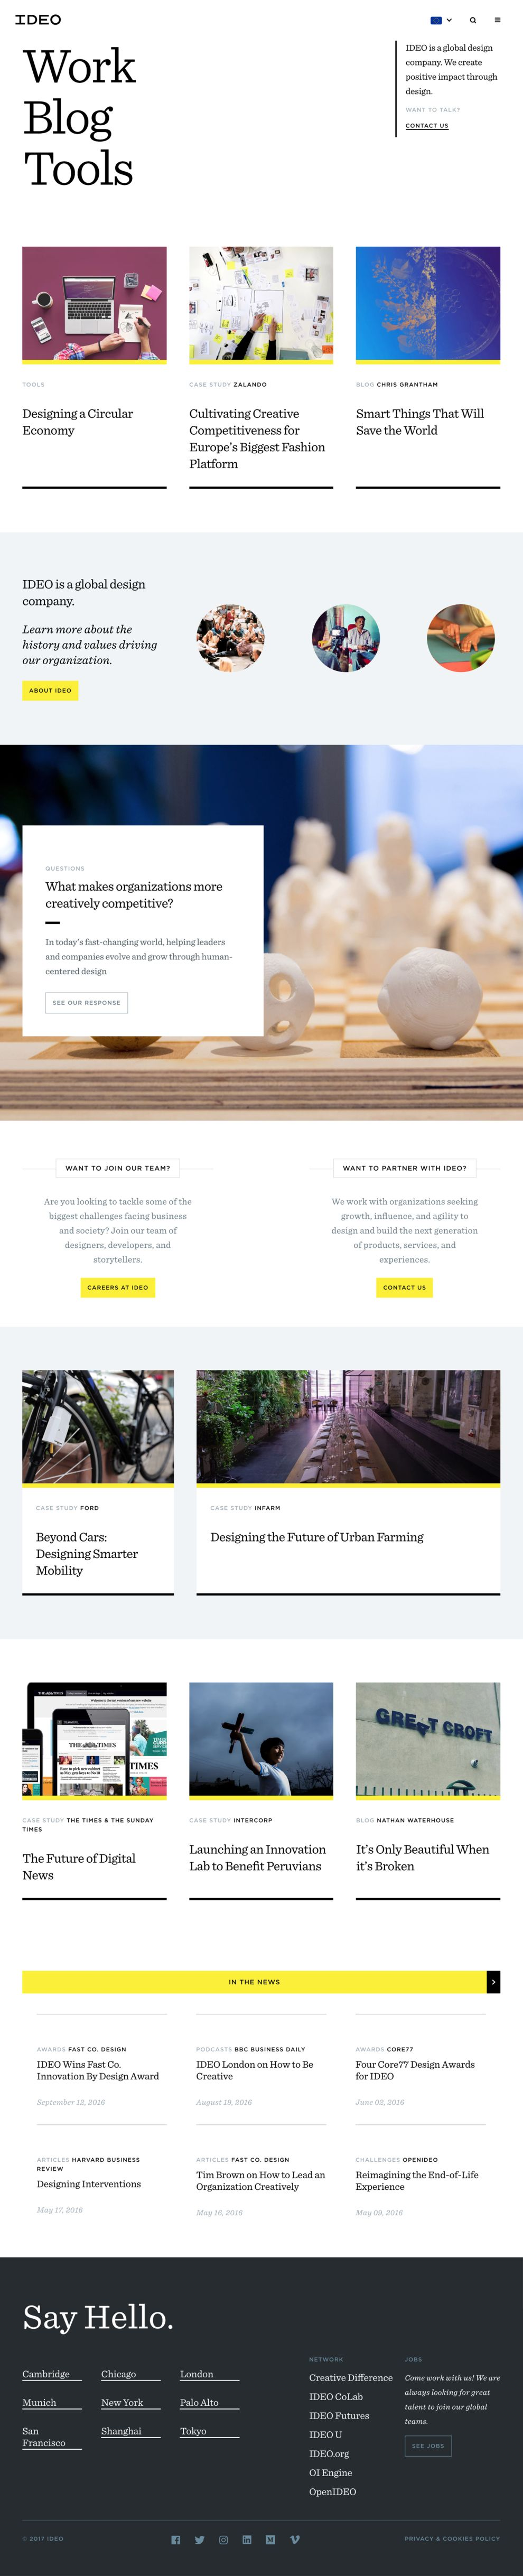 Ideo Corporate Homepage